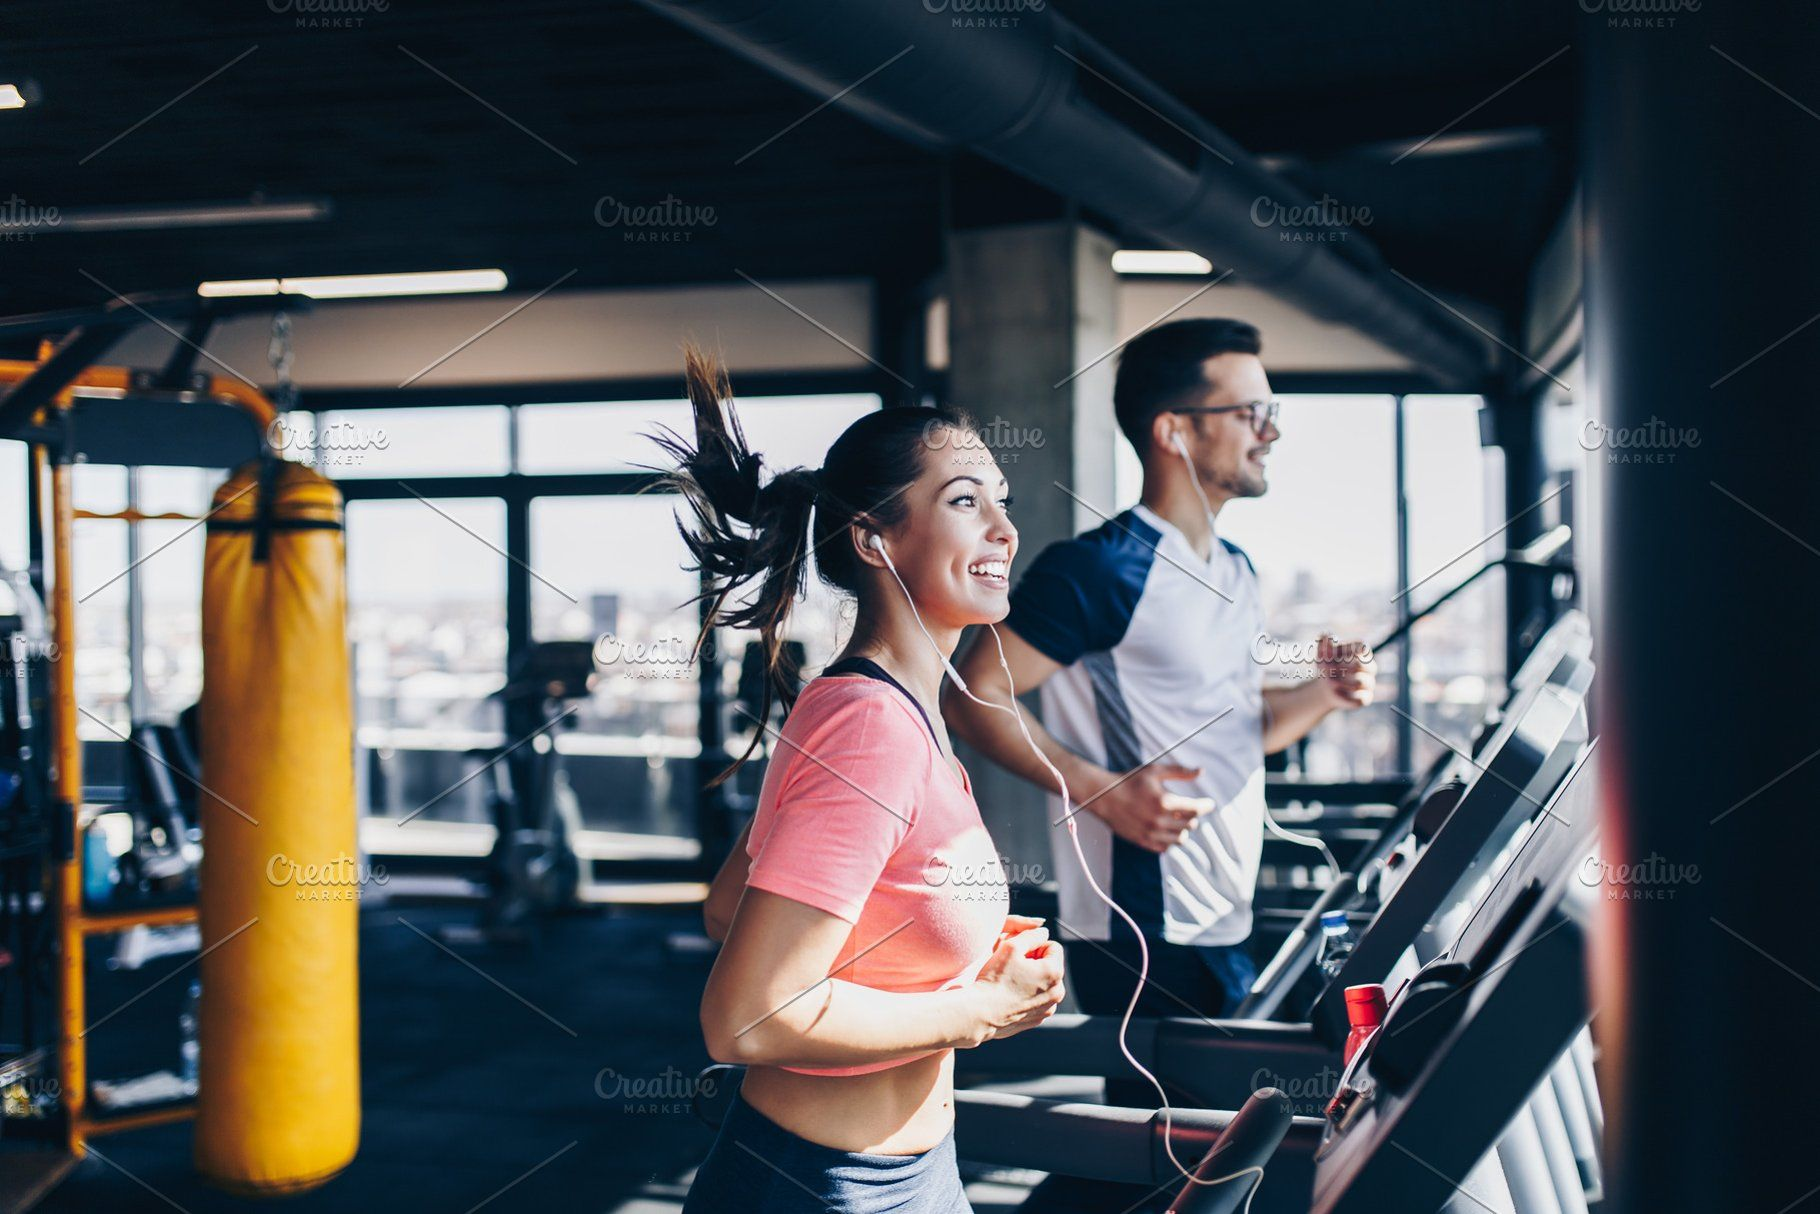 Ad People In Fitness Gym By Red Dot Studio On Creativemarket Young Fit Man And Woman Running On Treadmill In Mode Gym Workouts Back To The Gym Sports Photos